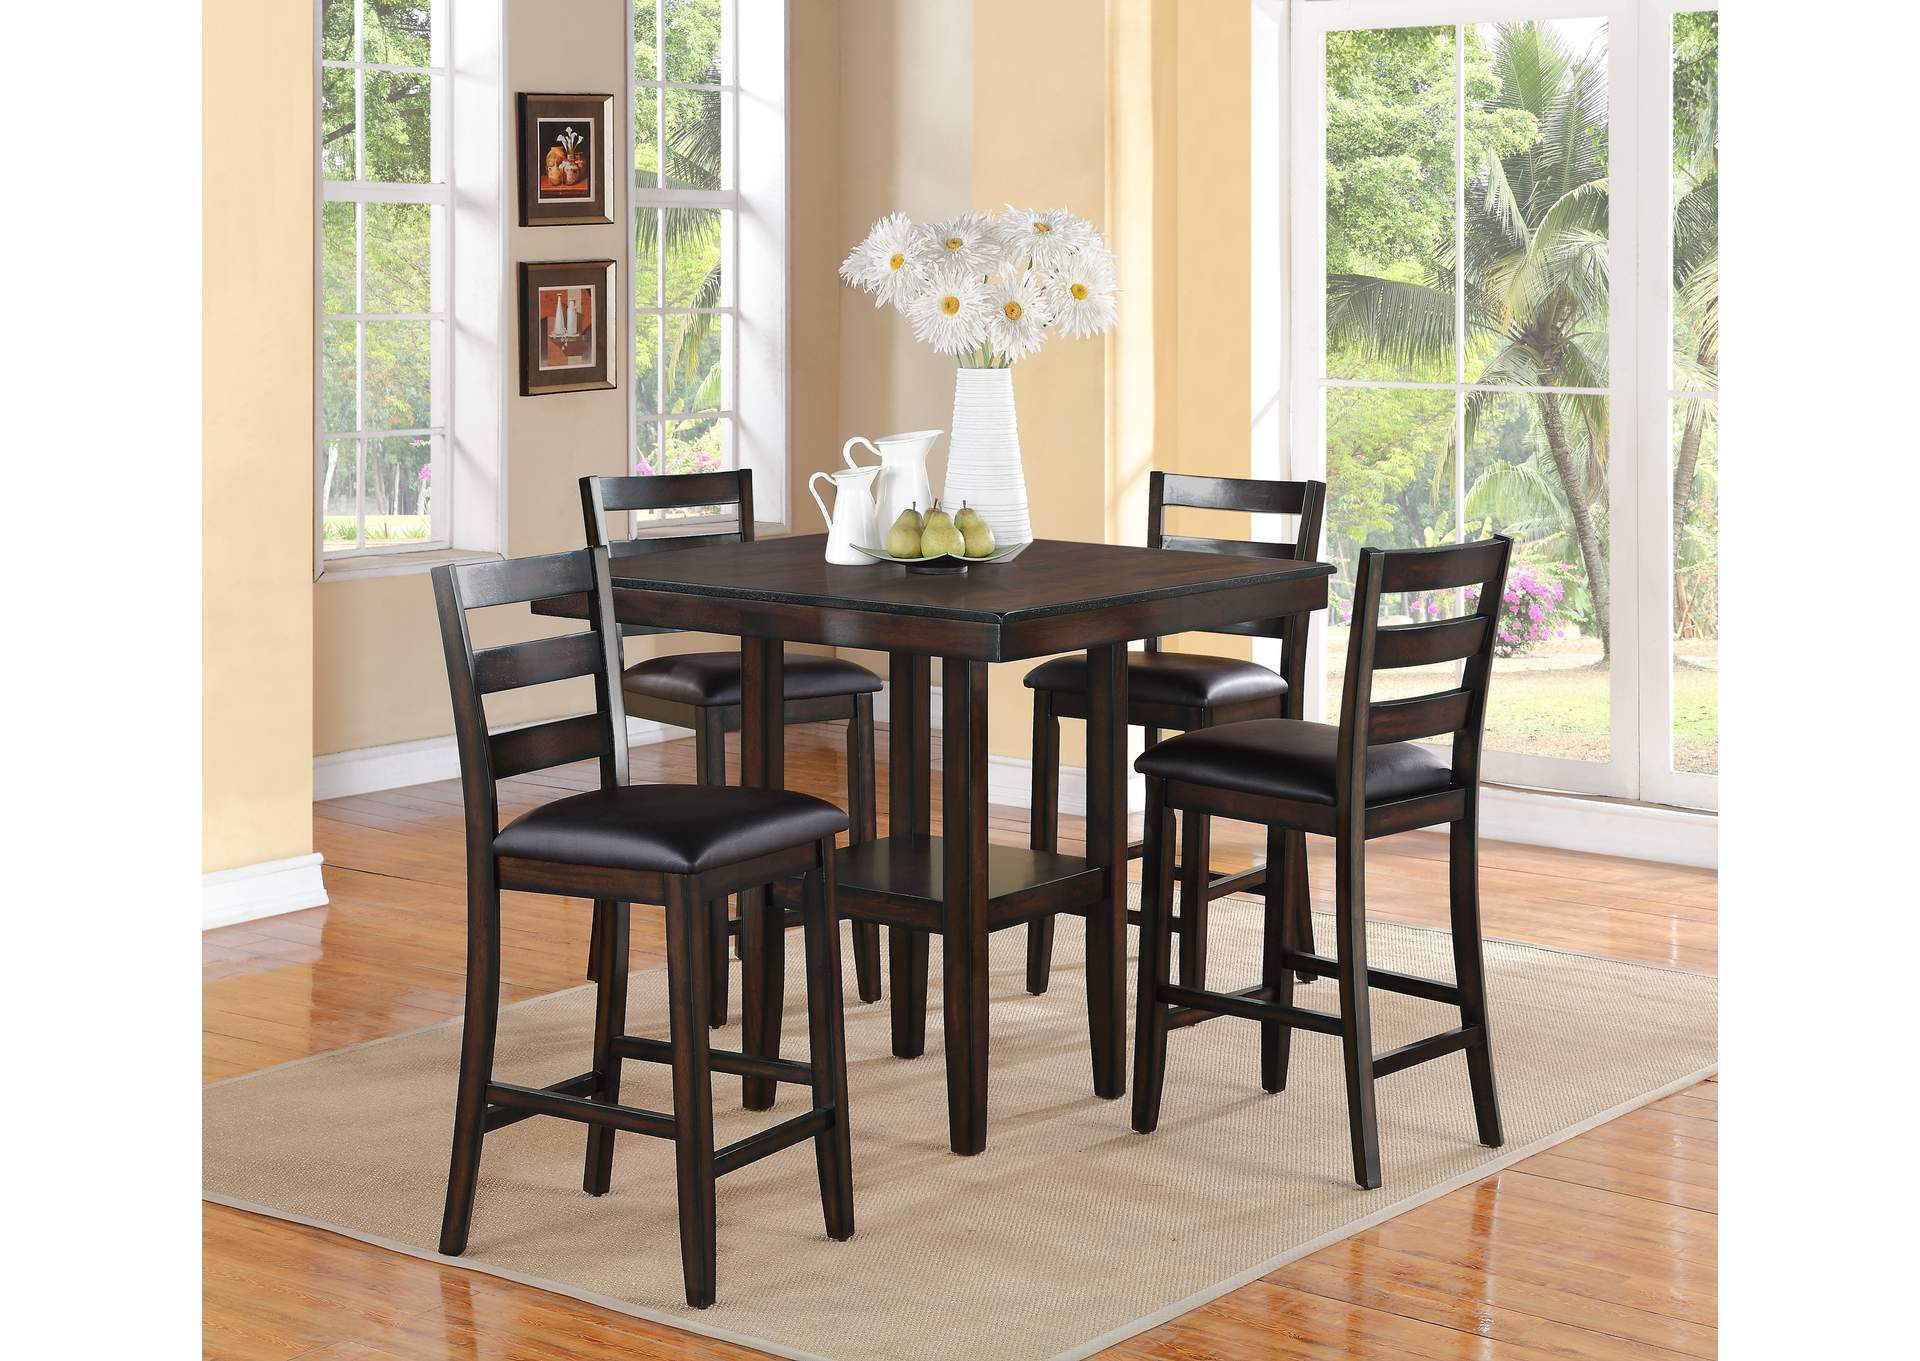 Tahoe 5 Piece Set Counter Height Dining Table Set,Crown Mark